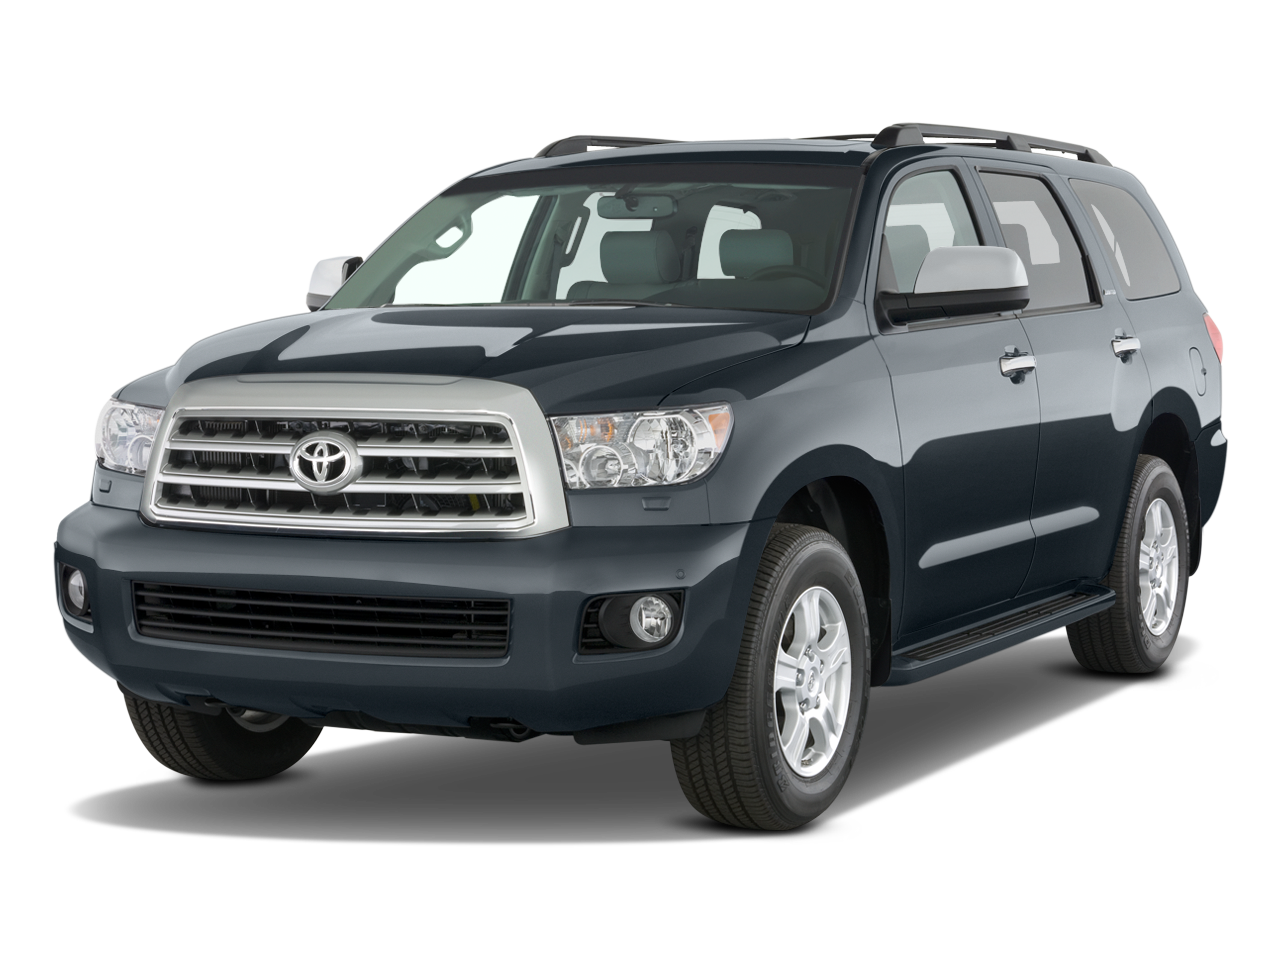 2008 Toyota Sequoia First Drive 2007 Los Angeles Auto